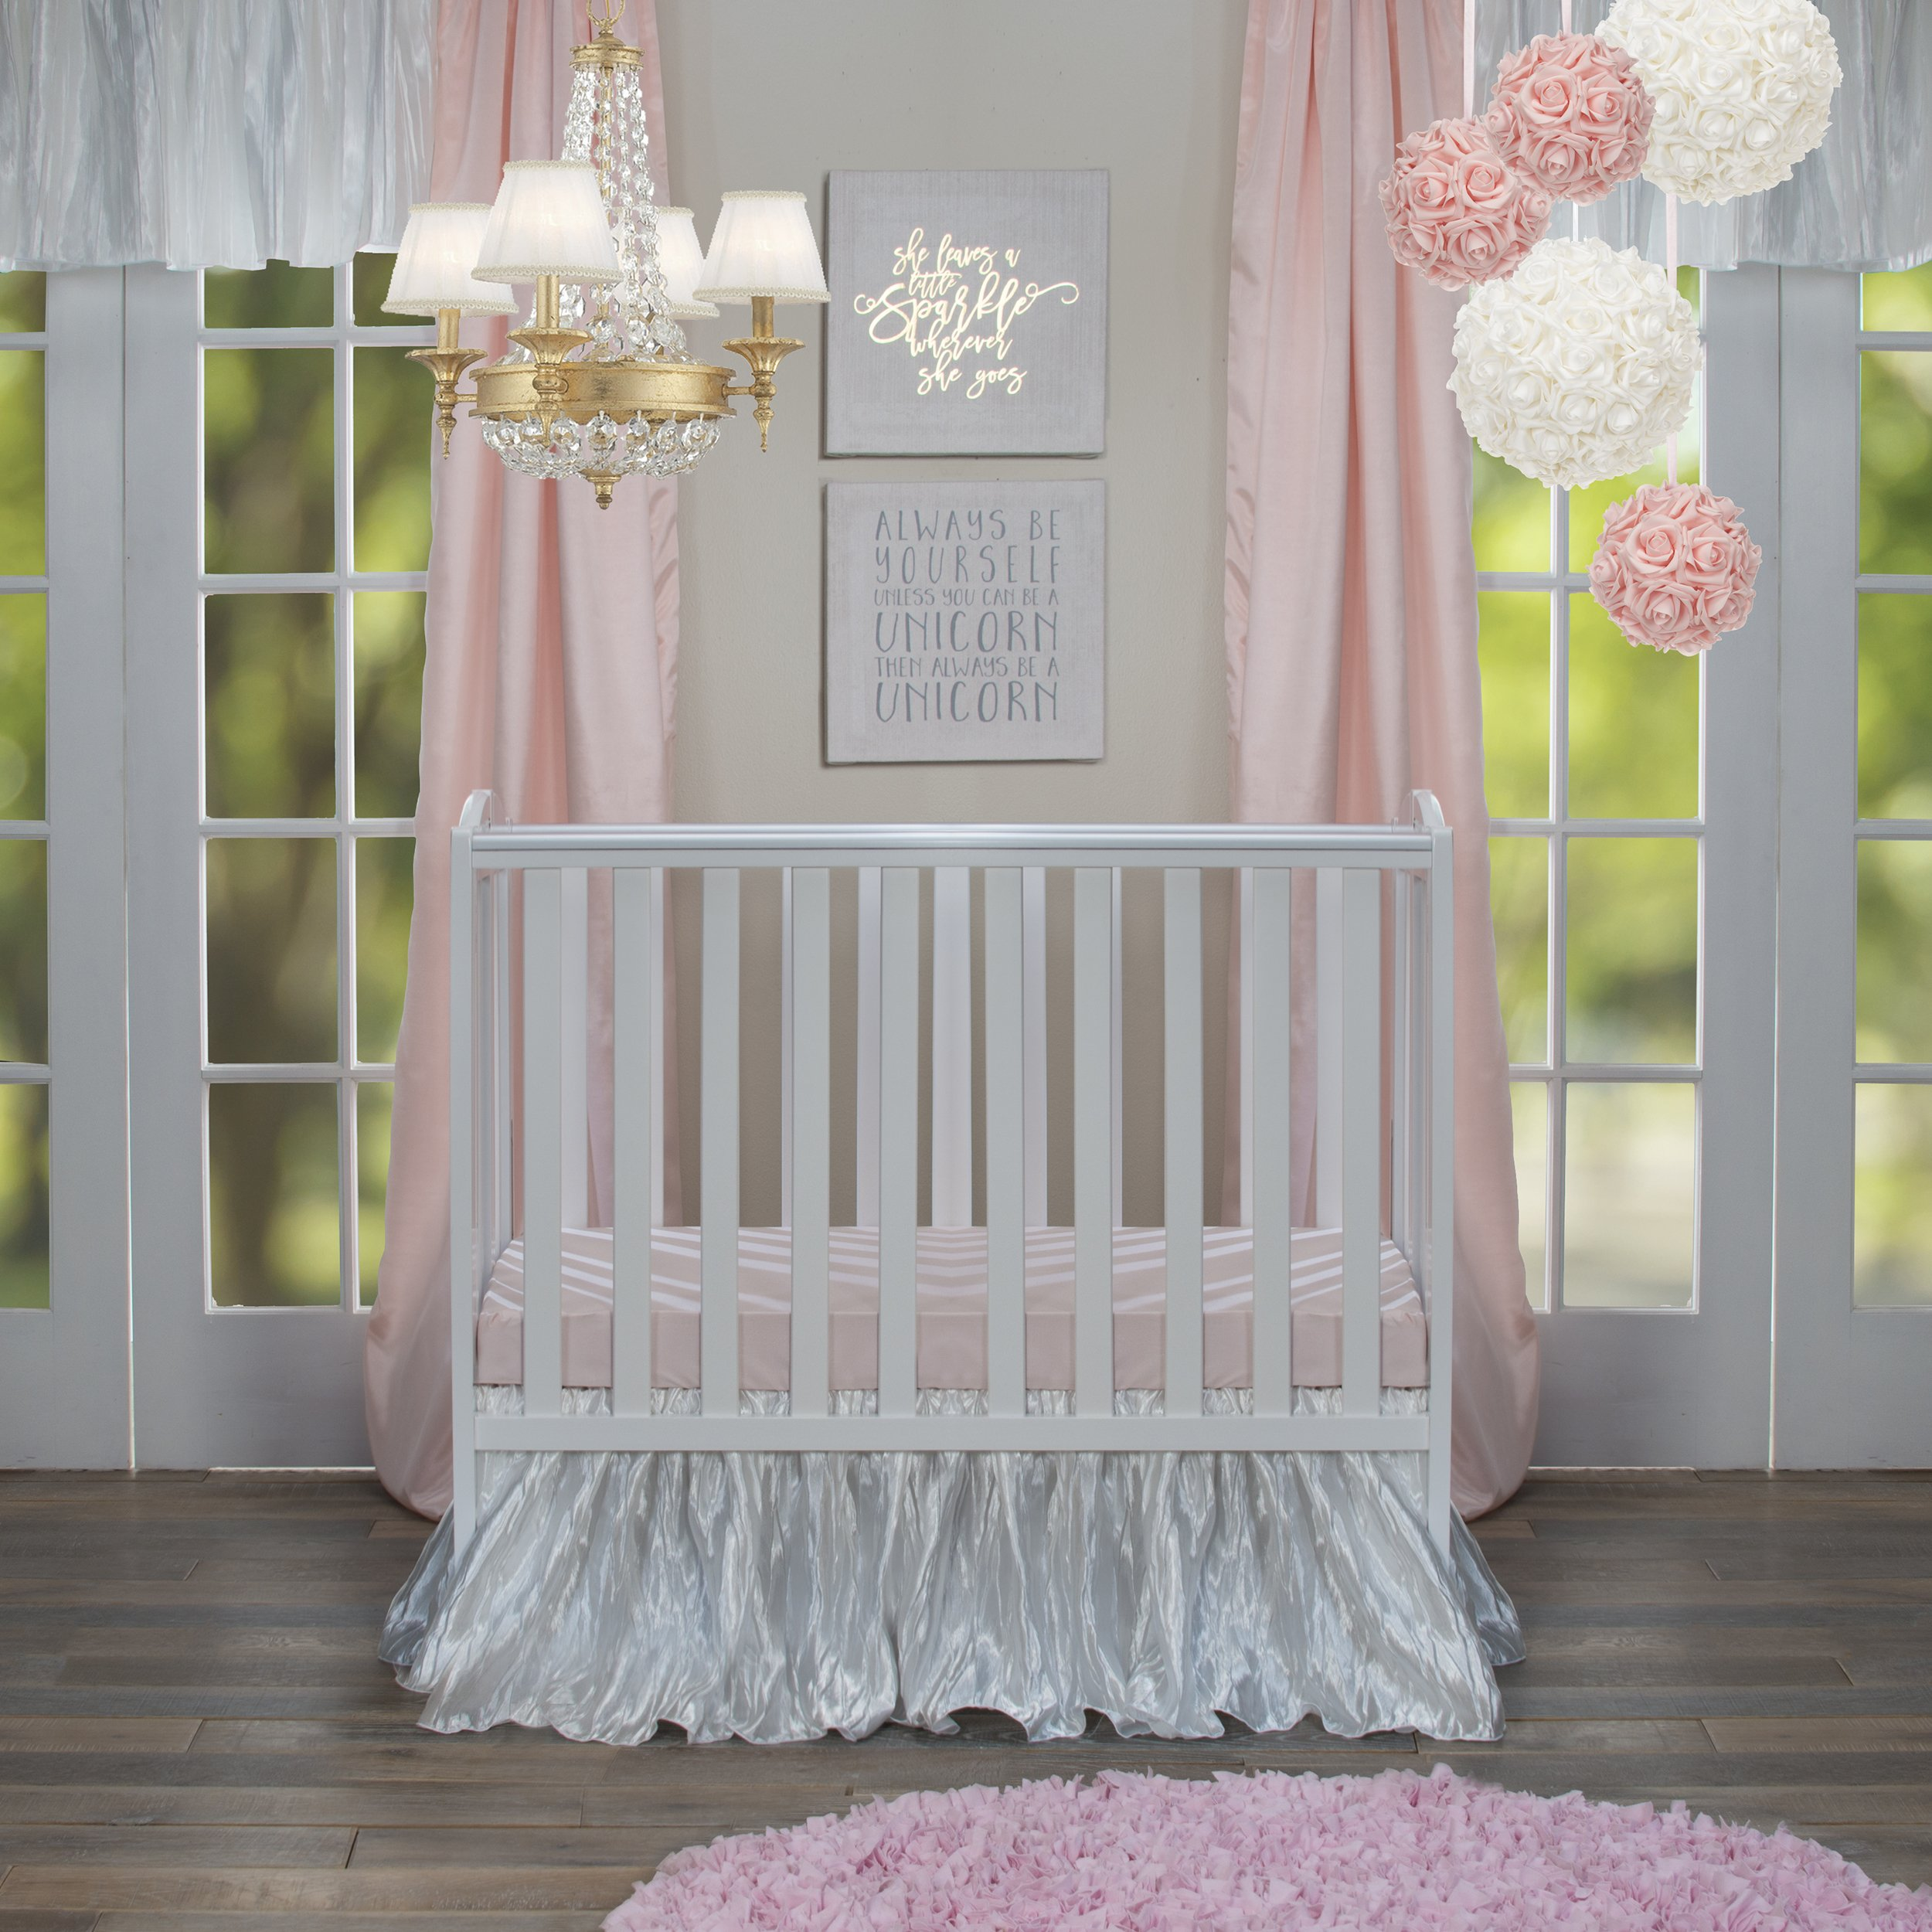 Glenna Jean Lil Princess Mini Crib 2 Piece Bedding Set includes Dust Ruffle and Fitted Sheet, Pink